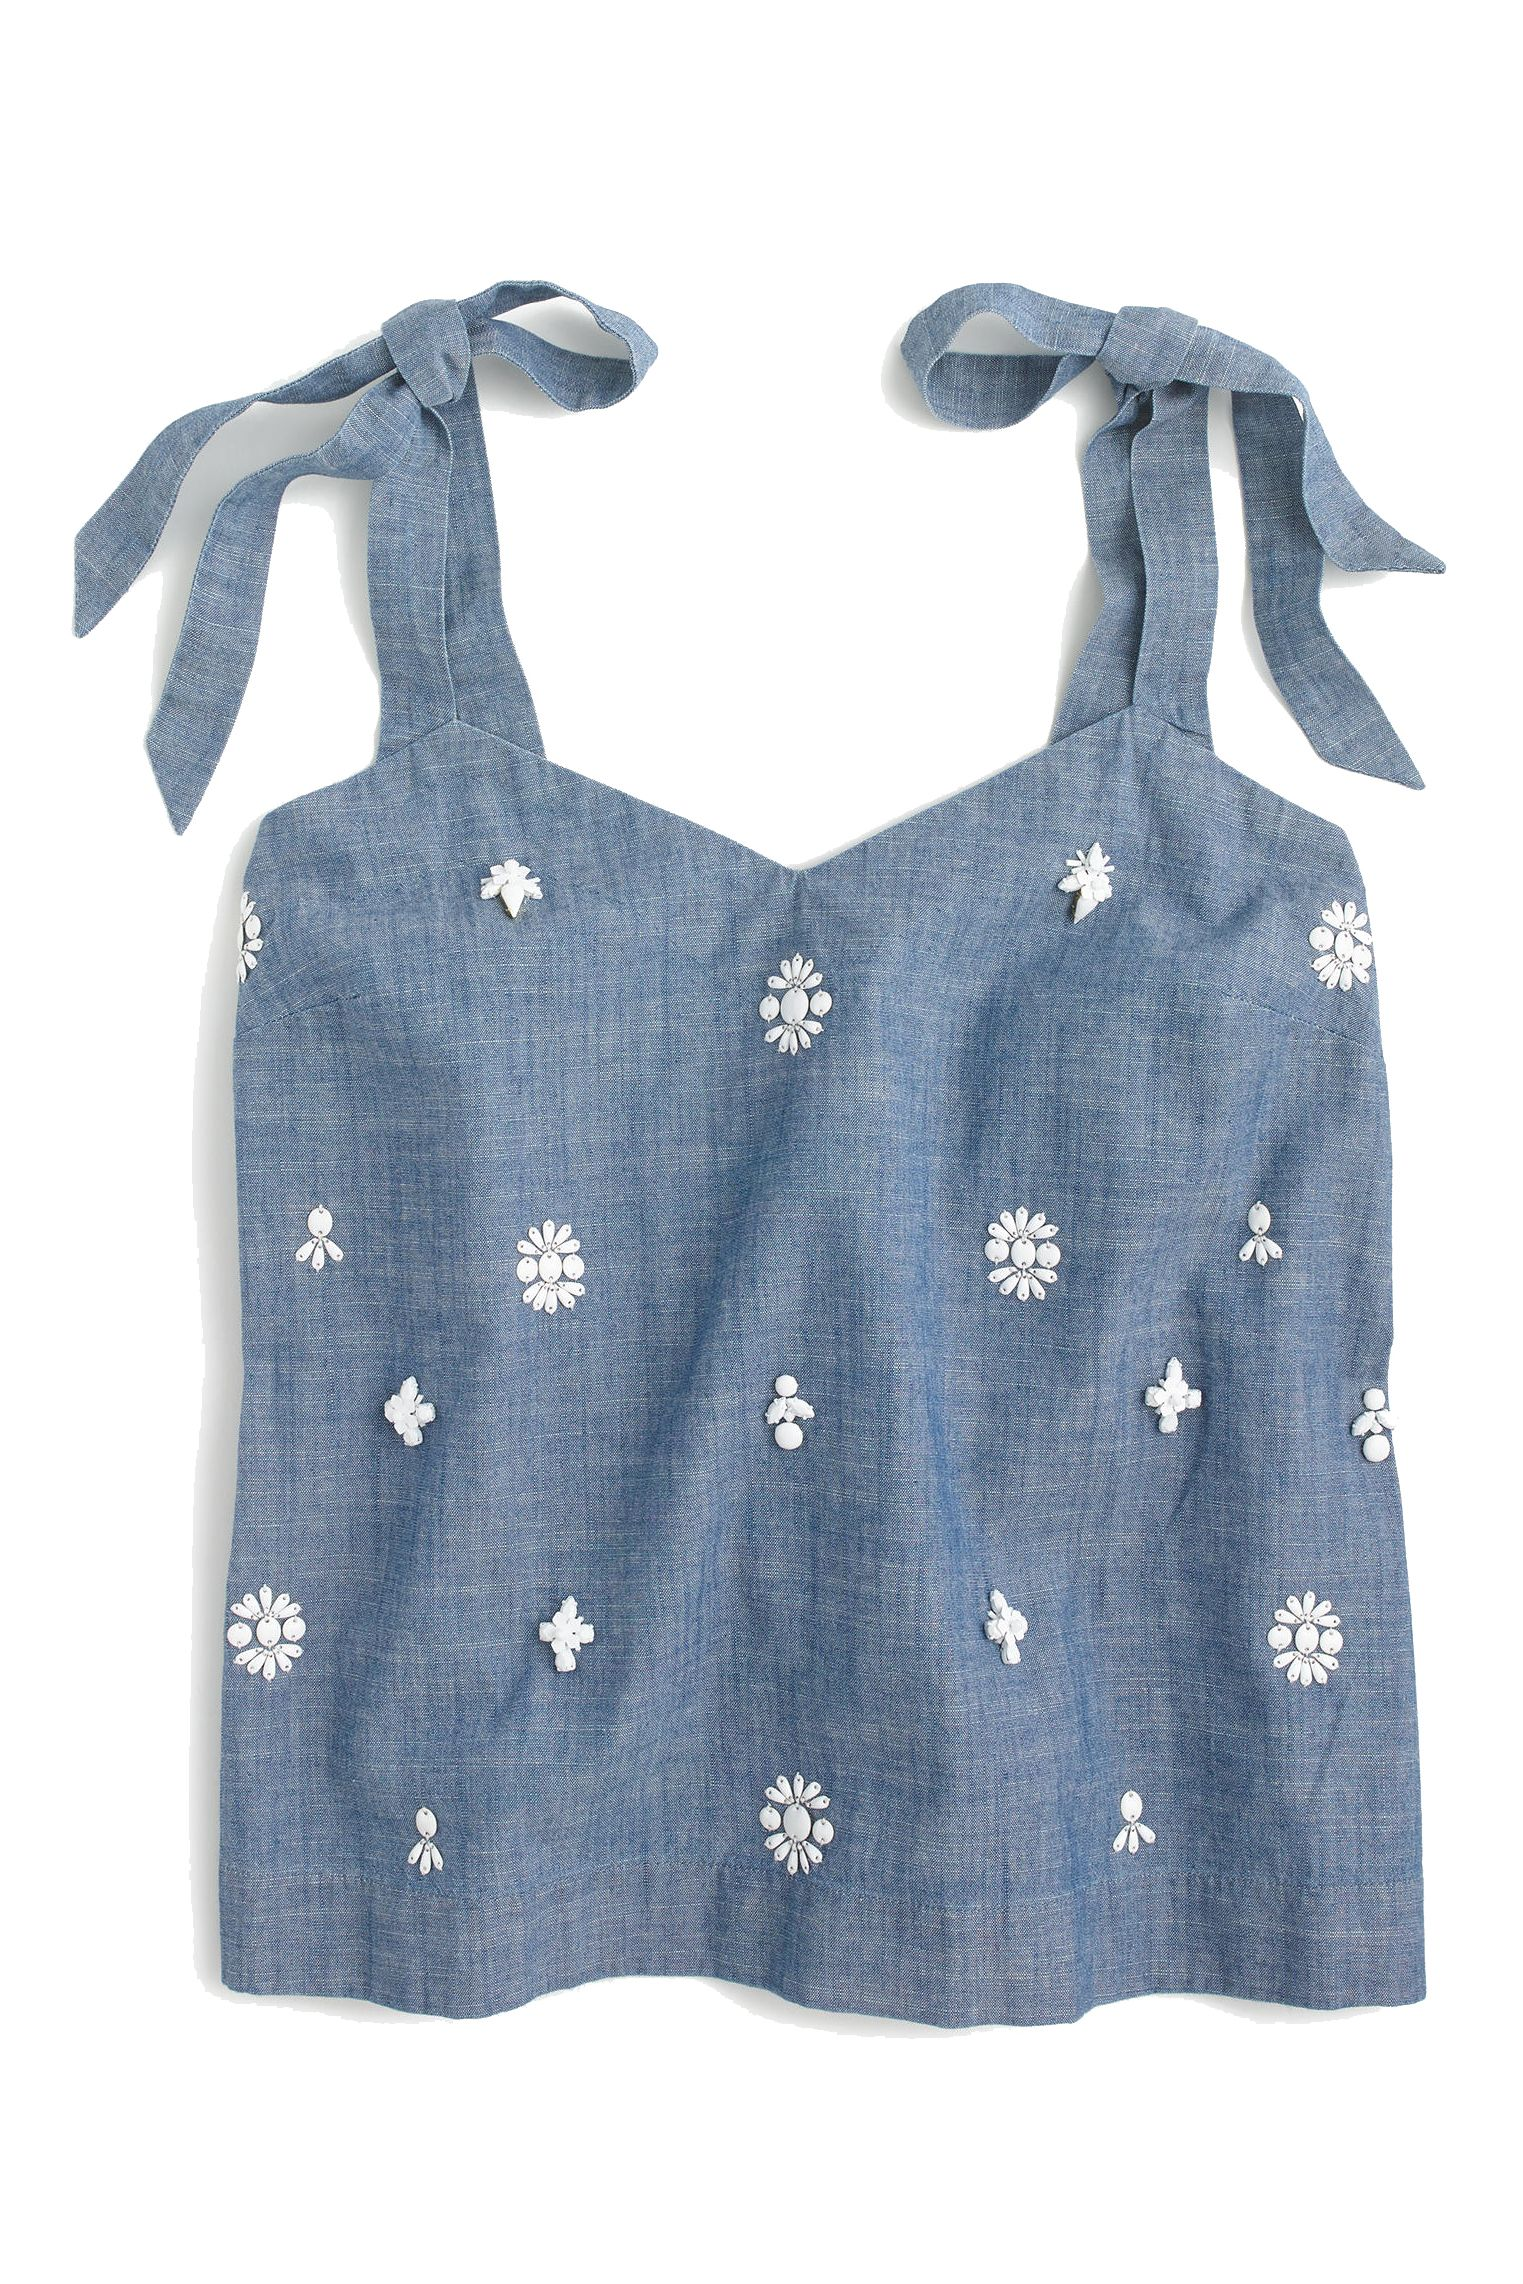 """<p>Though typically casual, a tank is party-ready with milky white embellishments and bow-tied shoulders.</p><p><em data-redactor-tag=""""em"""" data-verified=""""redactor"""">J.Crew Tie-Shoulder Top, $98; <a href=""""https://www.jcrew.com/p/womens_feature/newarrivals/topsandblouses/embellished-tieshoulder-top/G7638"""" target=""""_blank"""" data-tracking-id=""""recirc-text-link"""">jcrew.com</a></em></p>"""